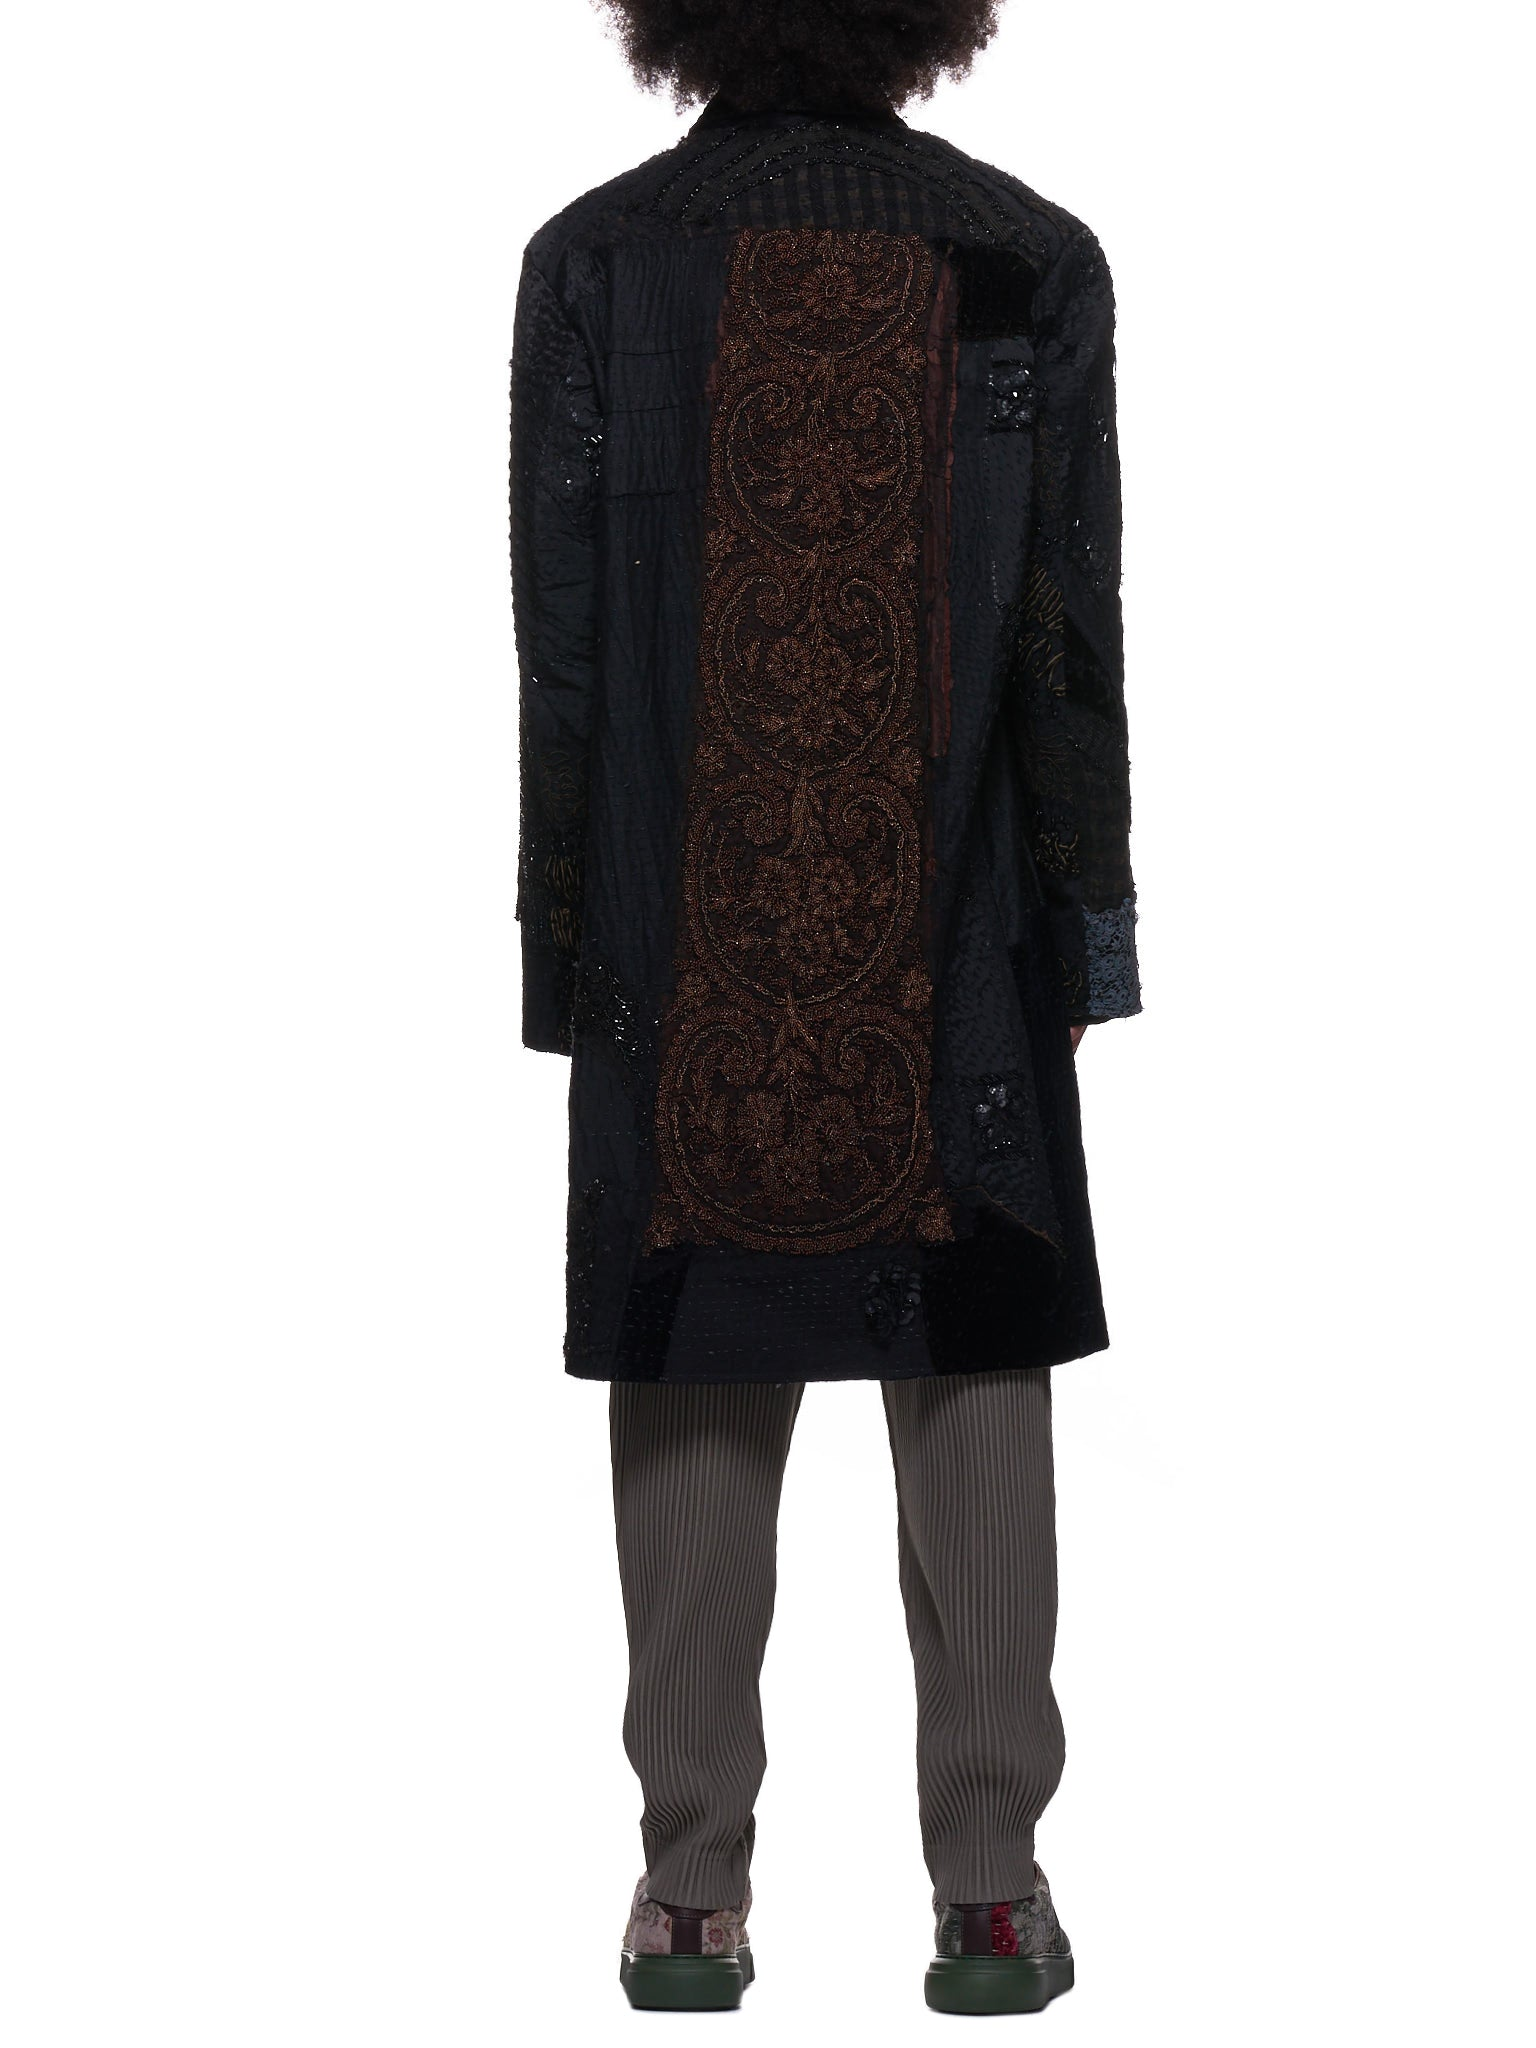 Rufus Coat (2701824M-1-DARK)